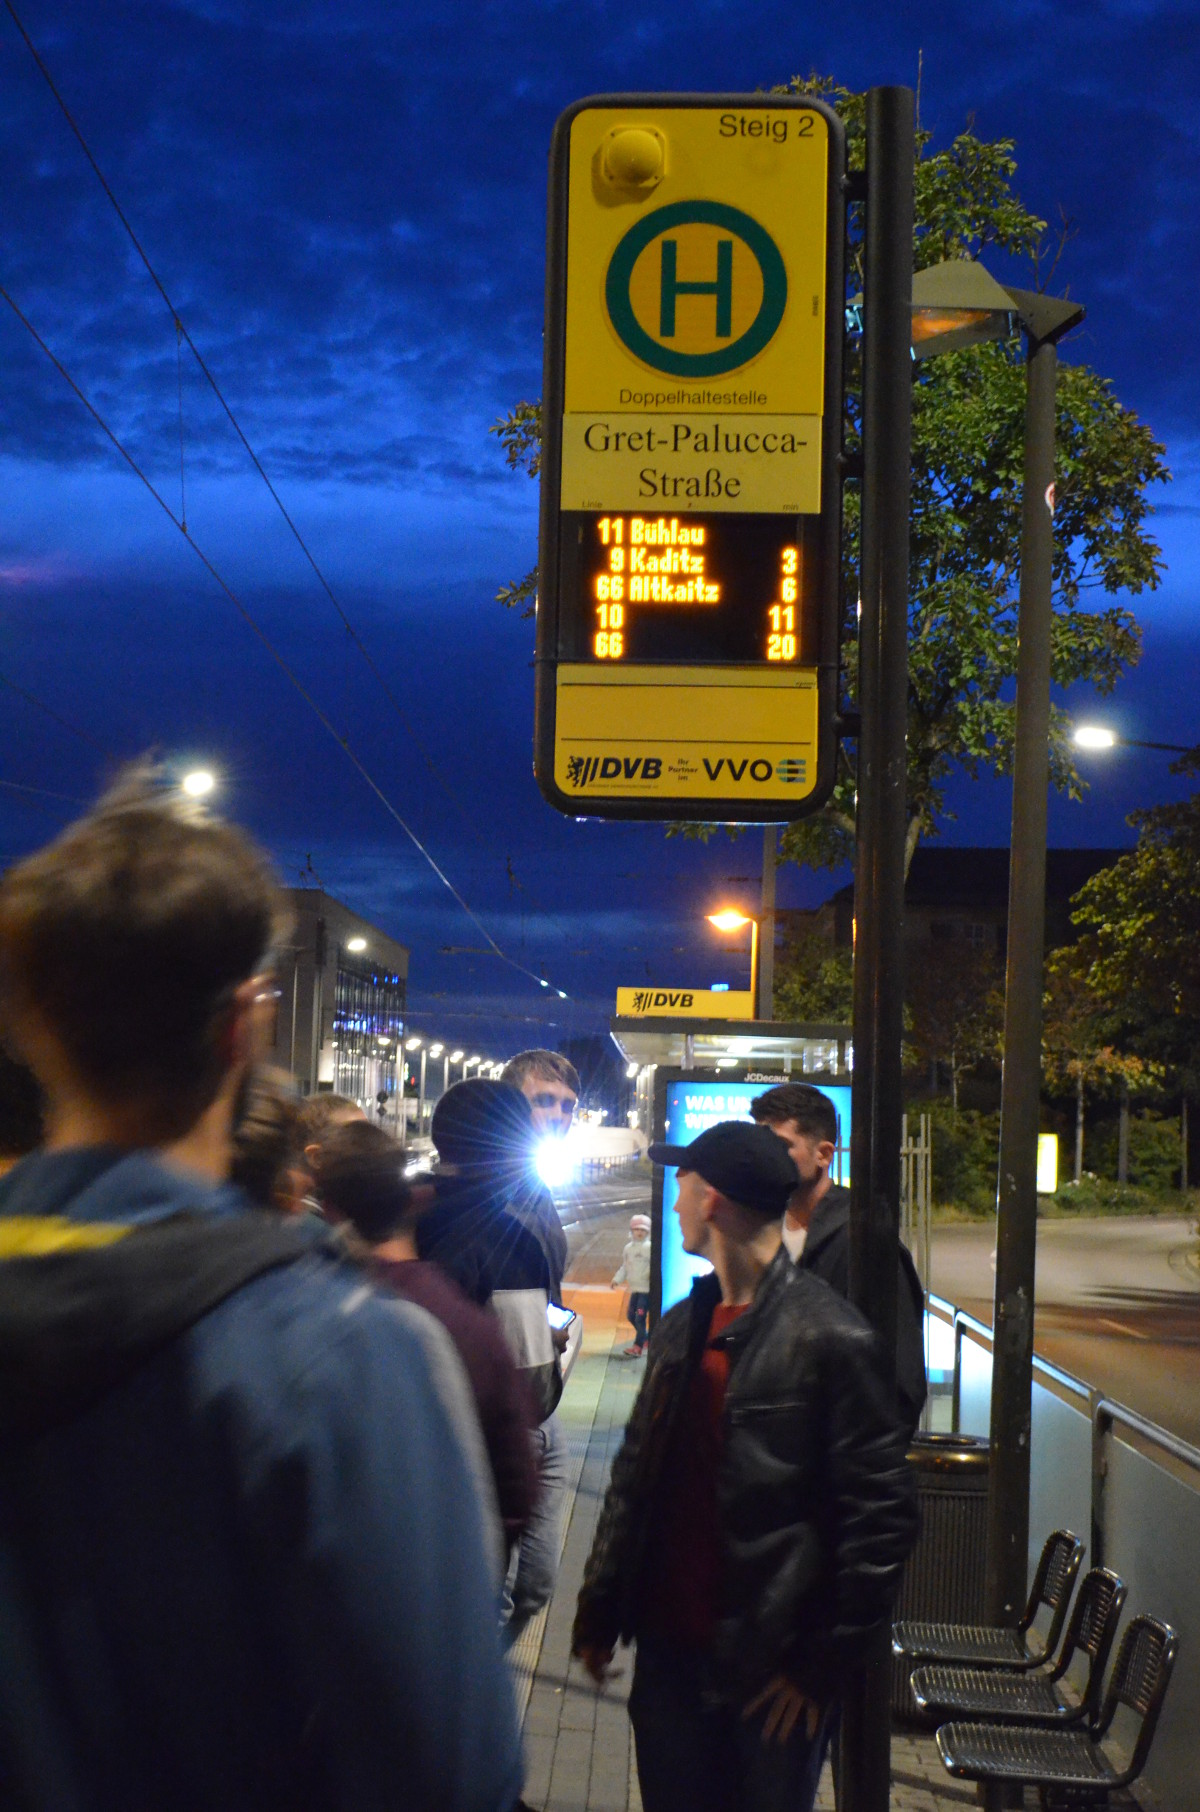 A few of the students at an tram stop